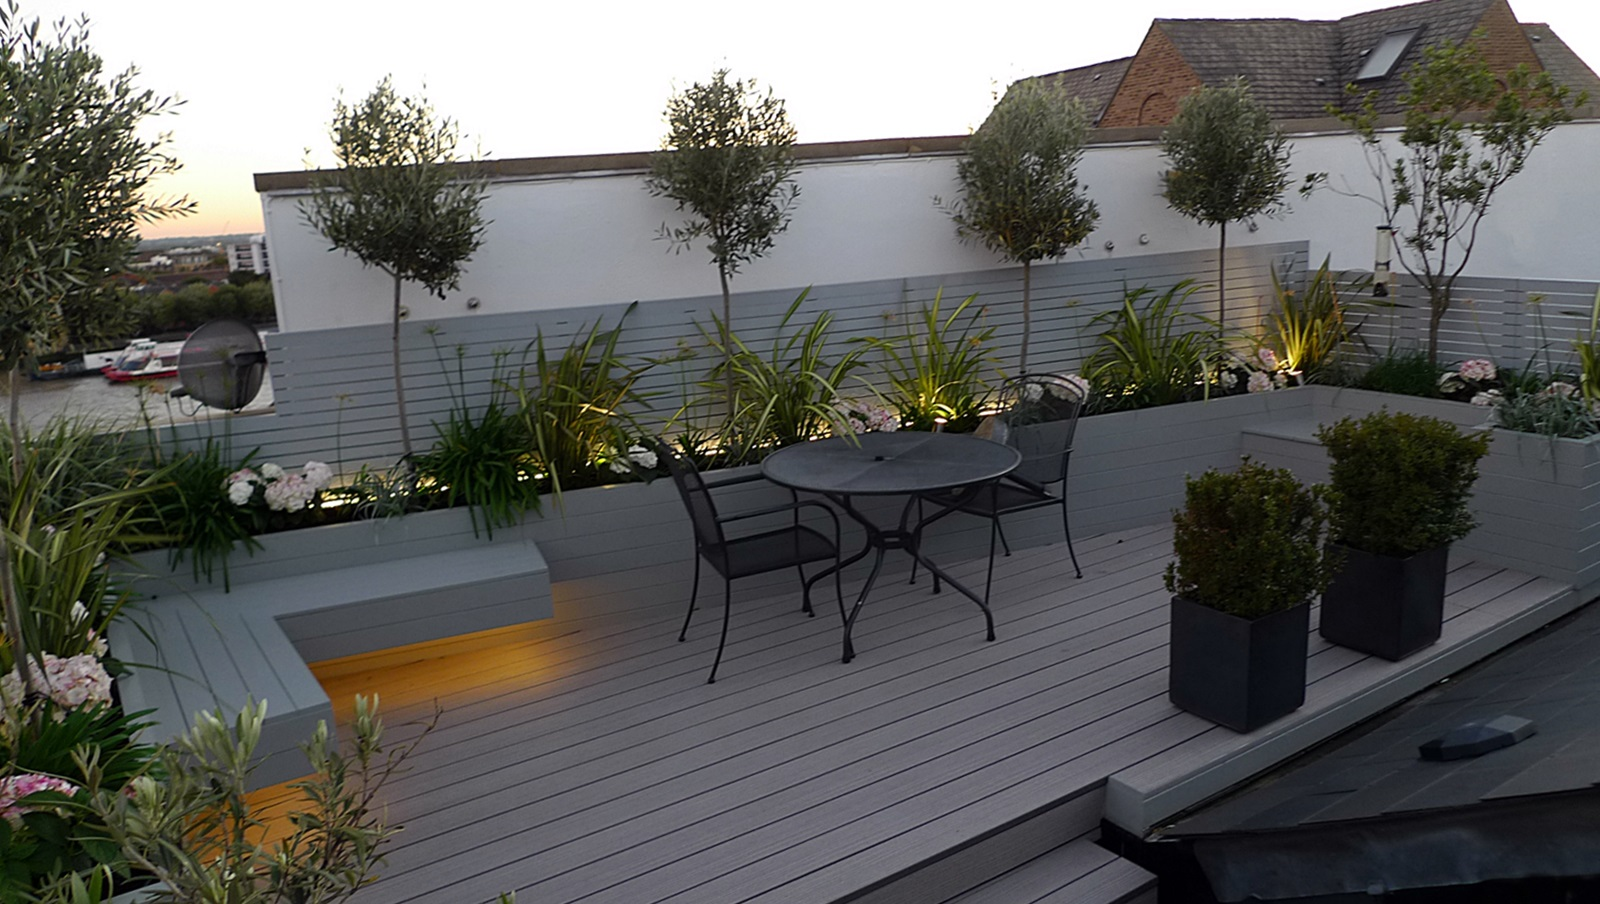 Roof terrace modern garden design london garden blog for Terrace landscape design